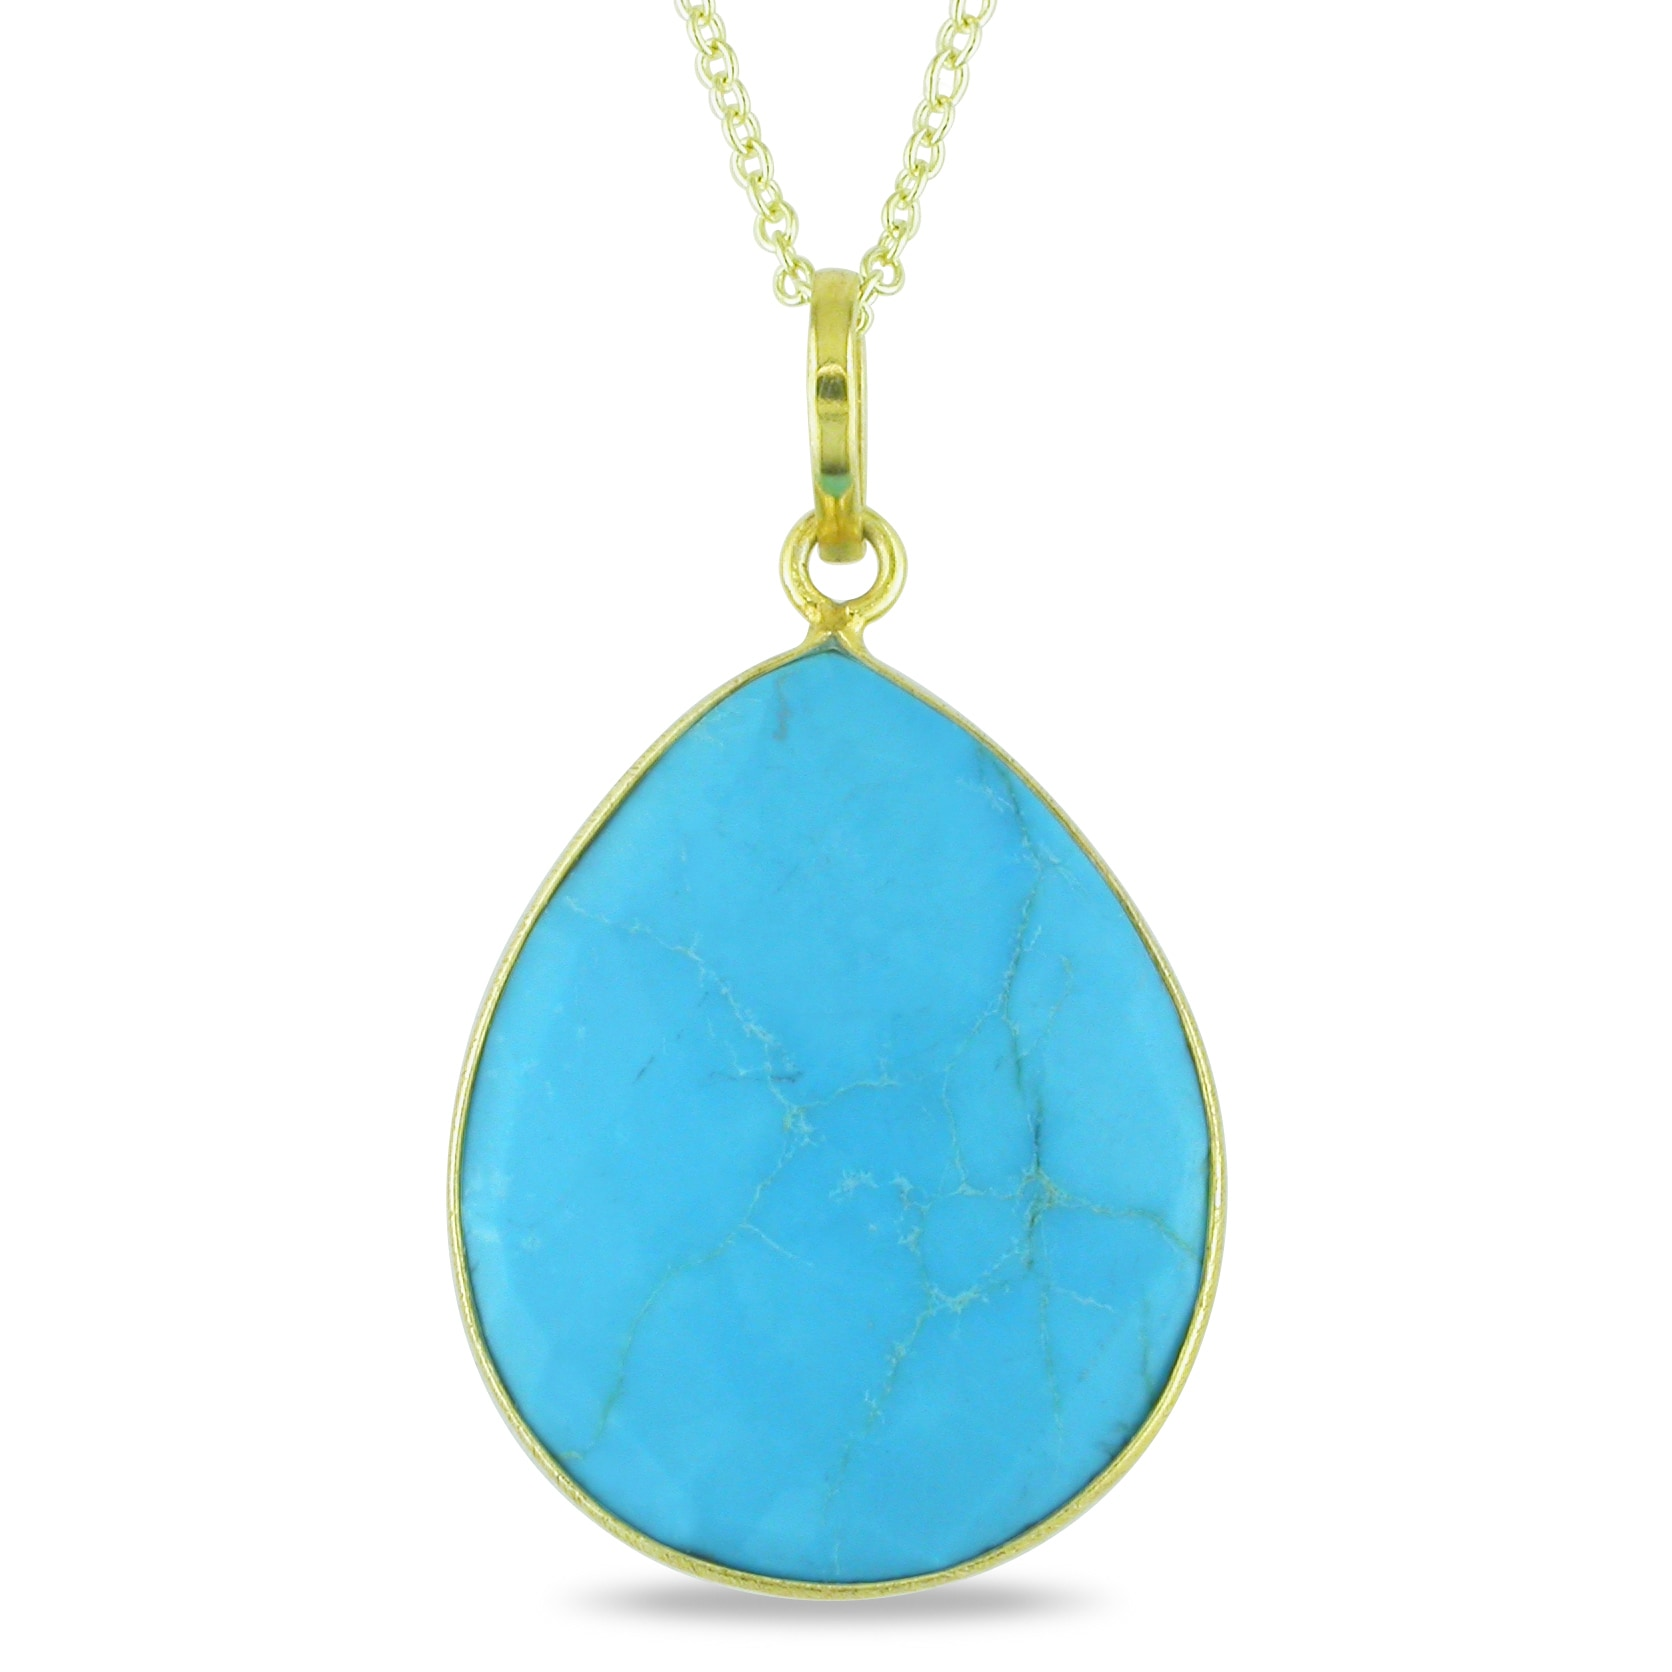 22K Gold-Plated Silver Turquoise Pendant Necklace